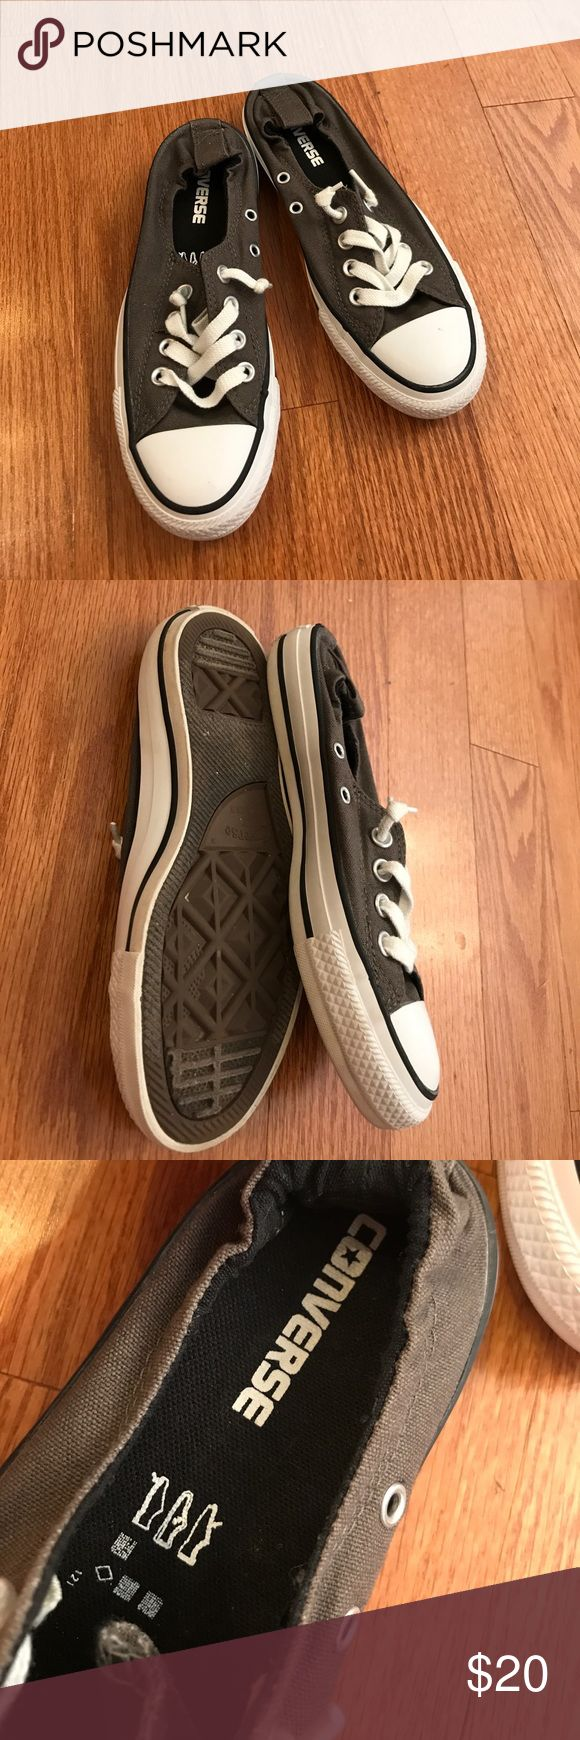 Converse slip on shoes! Basically brand new, these shoes are classic gray converse slip ons! Converse Shoes